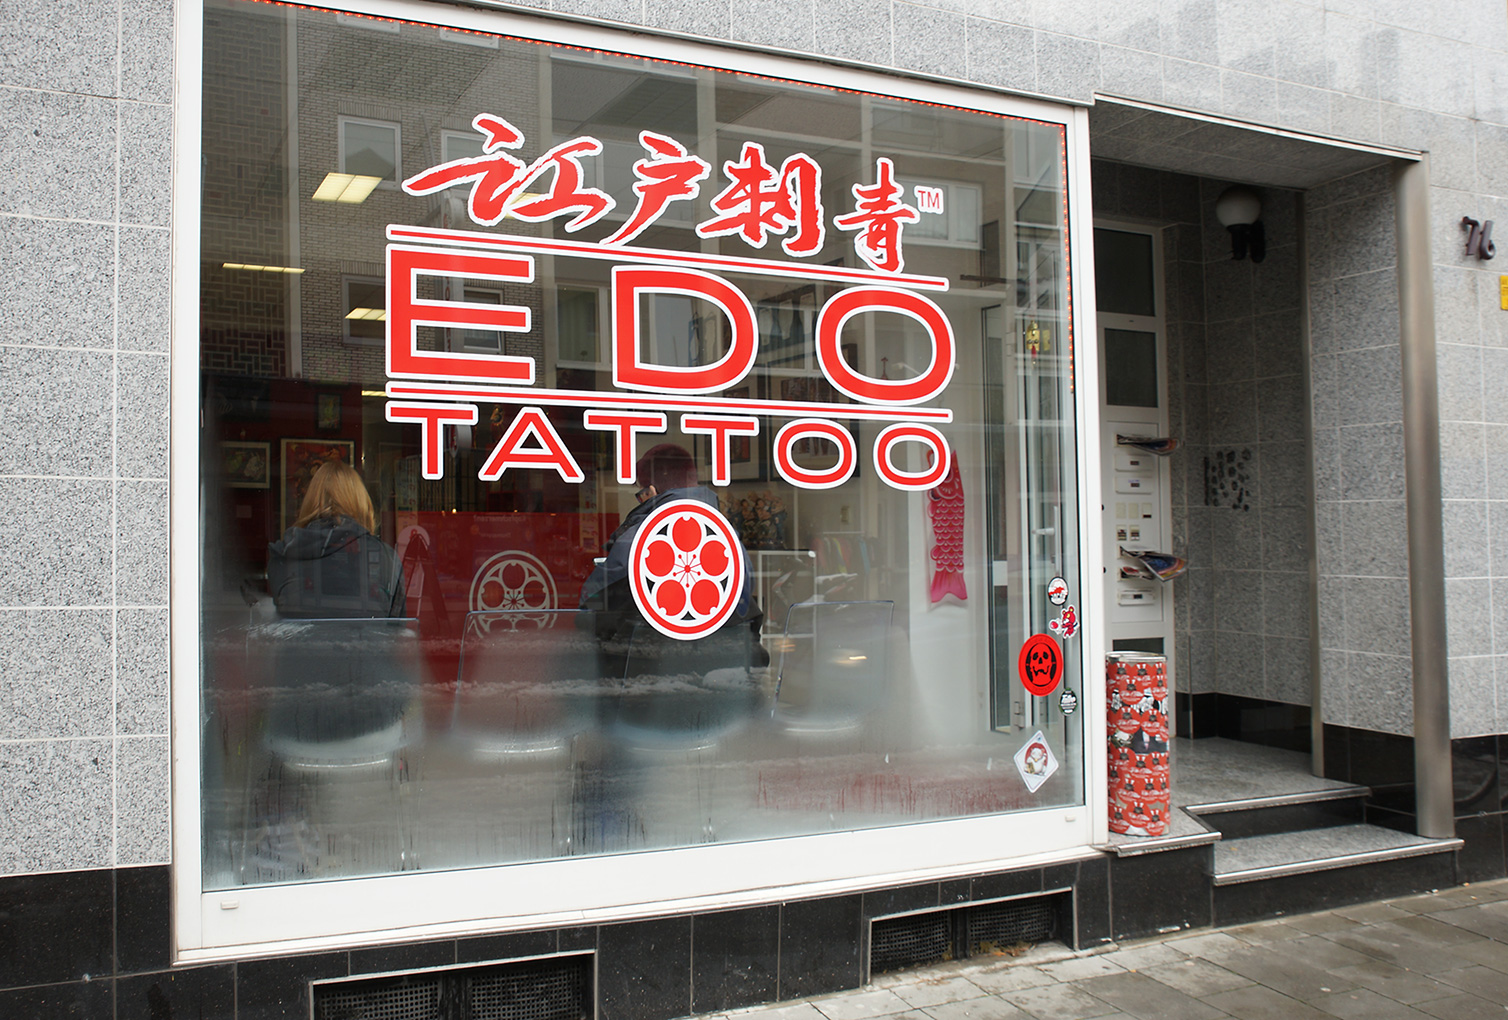 Tattoo studio düsseldorf